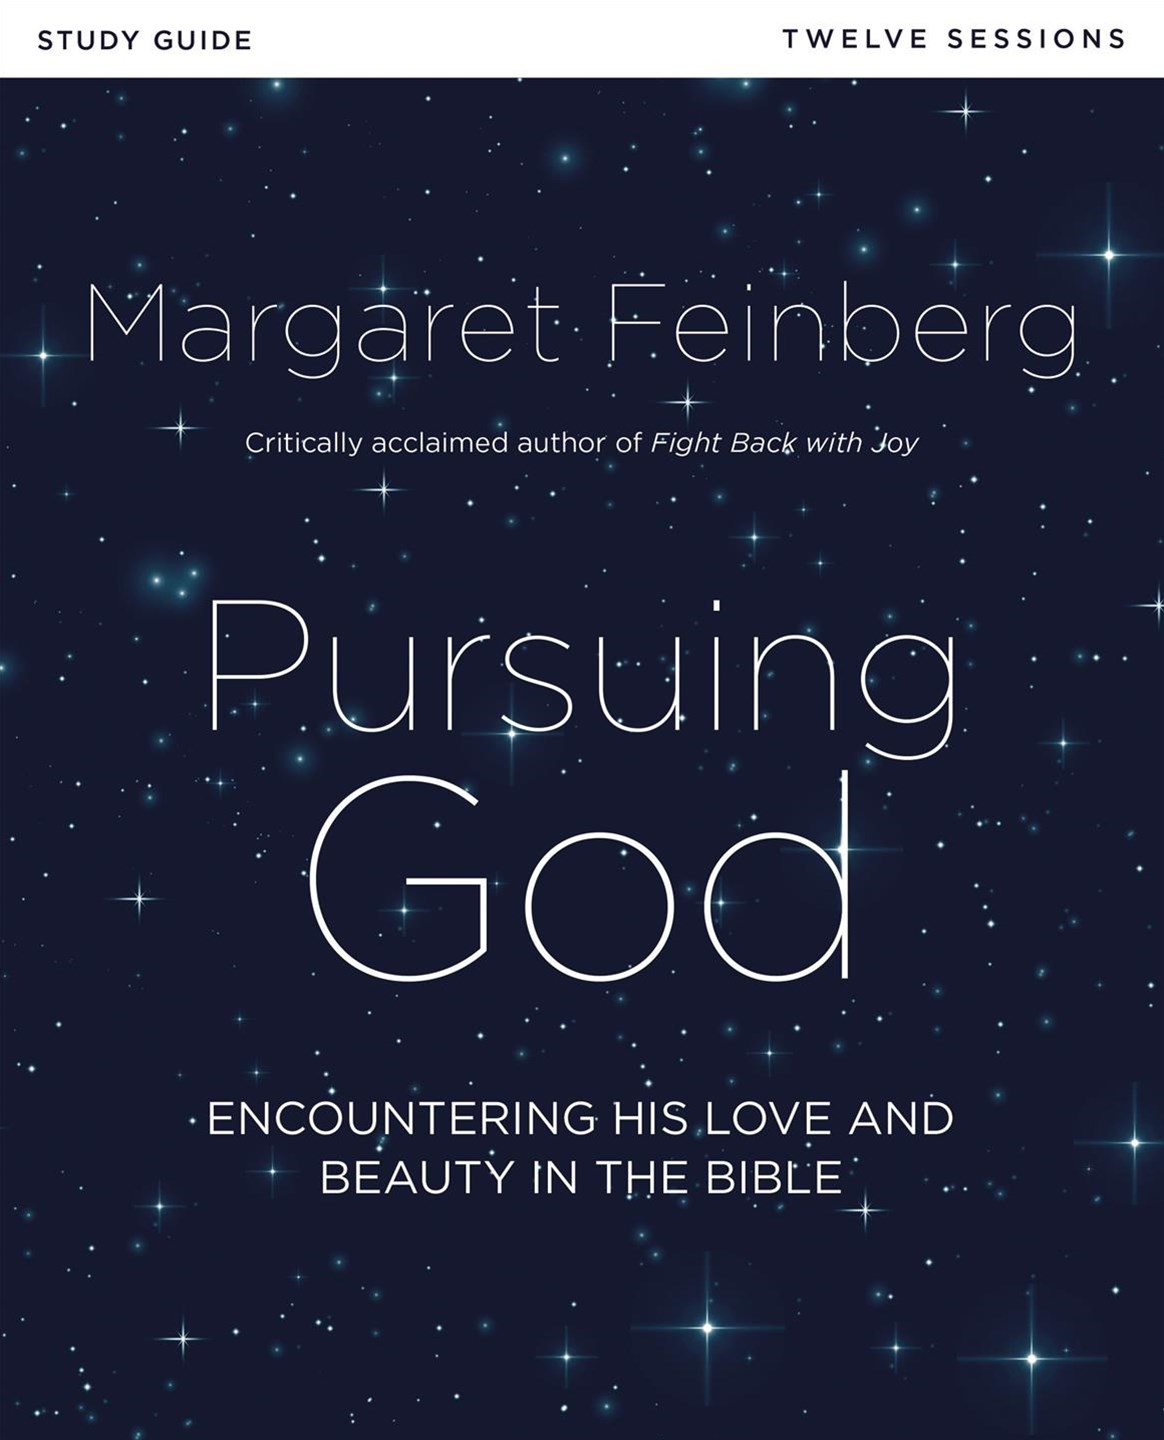 Pursuing God Study Guide: Encountering His Love And Beauty In The Bible